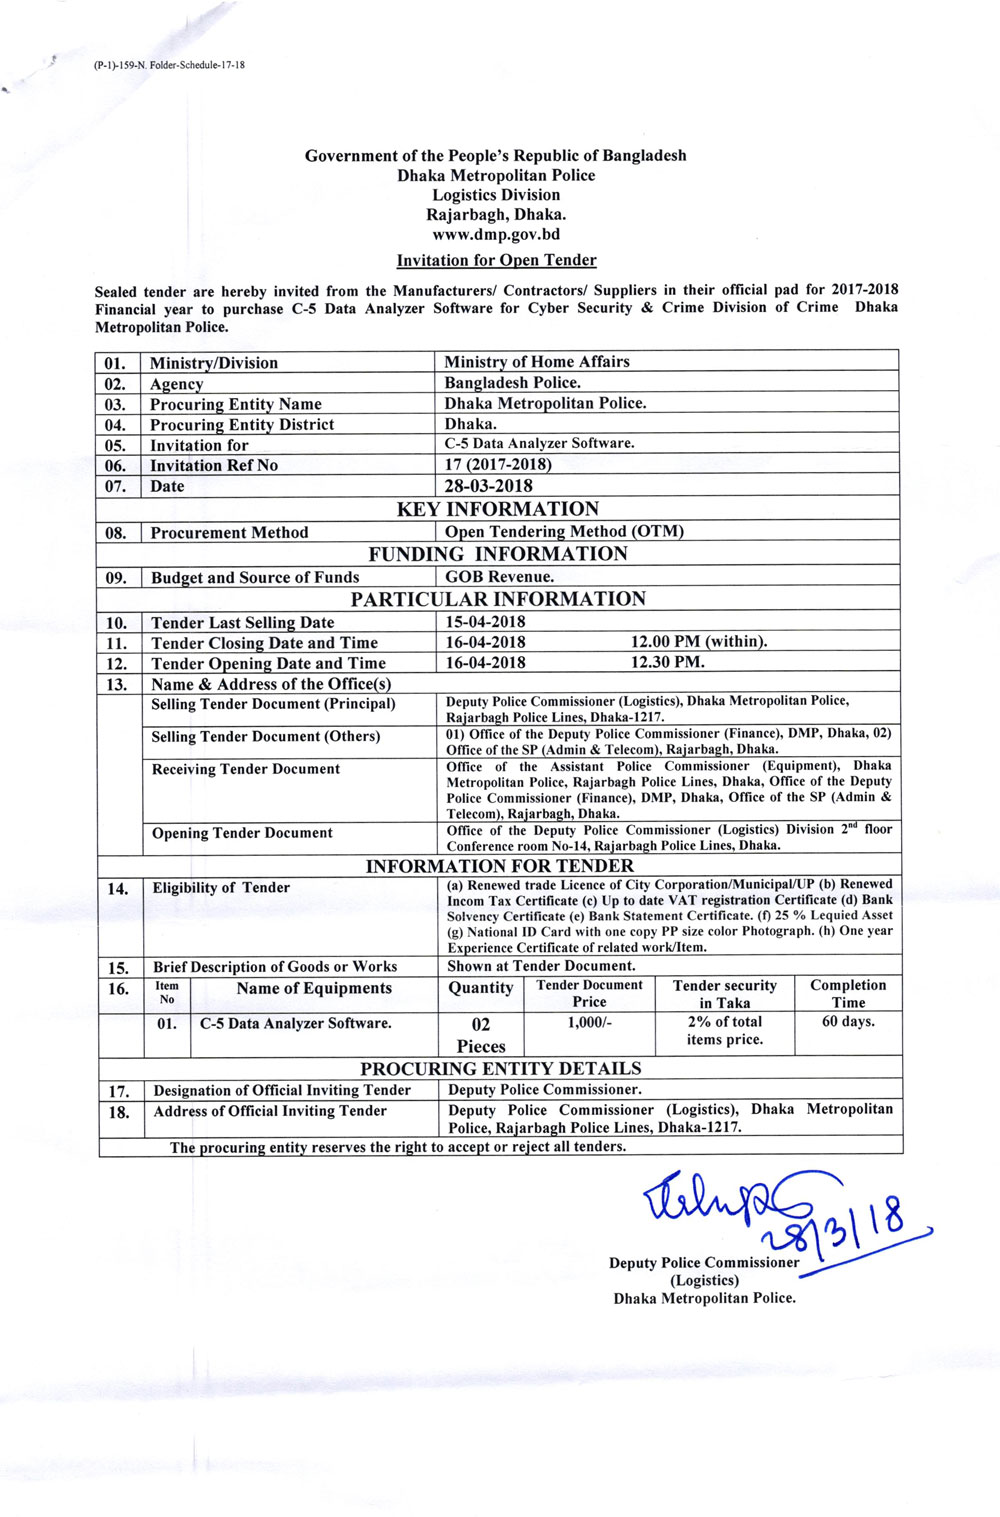 Invitation for Open Tender From Dmp Logistics Division (29